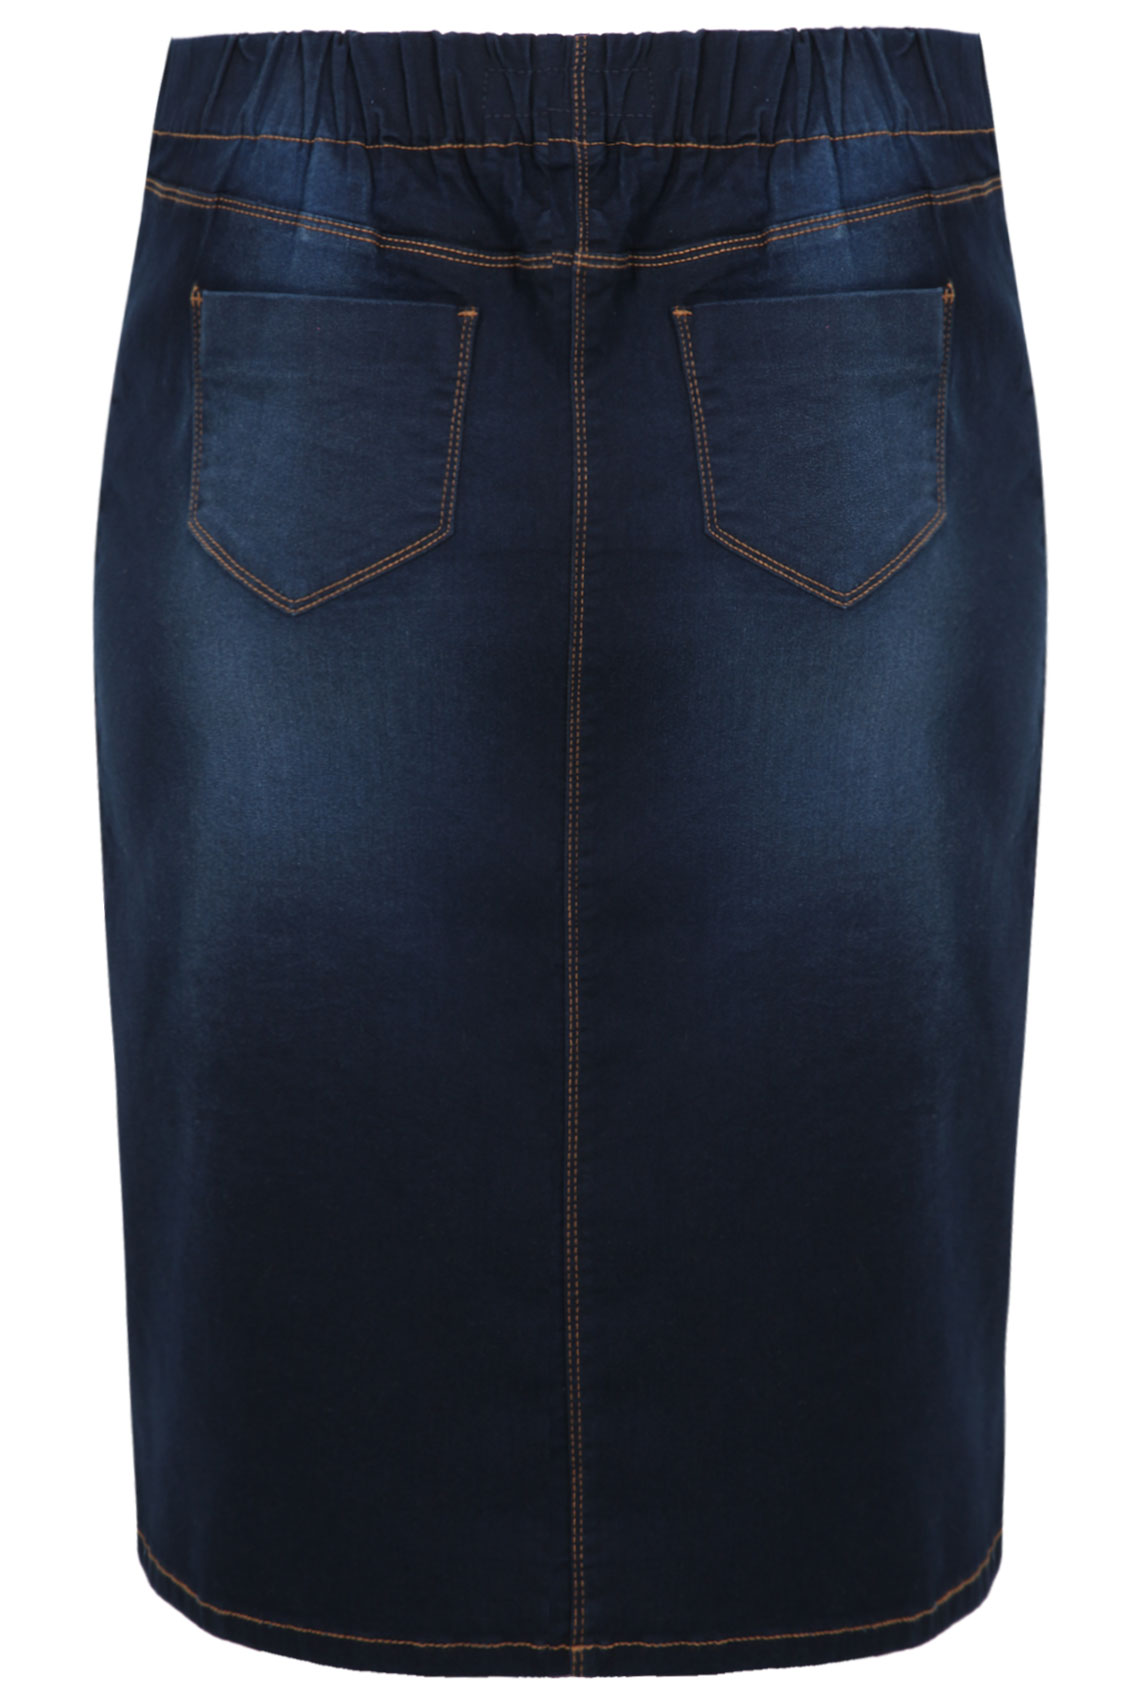 Indigo Denim Pull On Midi Pencil Skirt plus Size 14 to 28